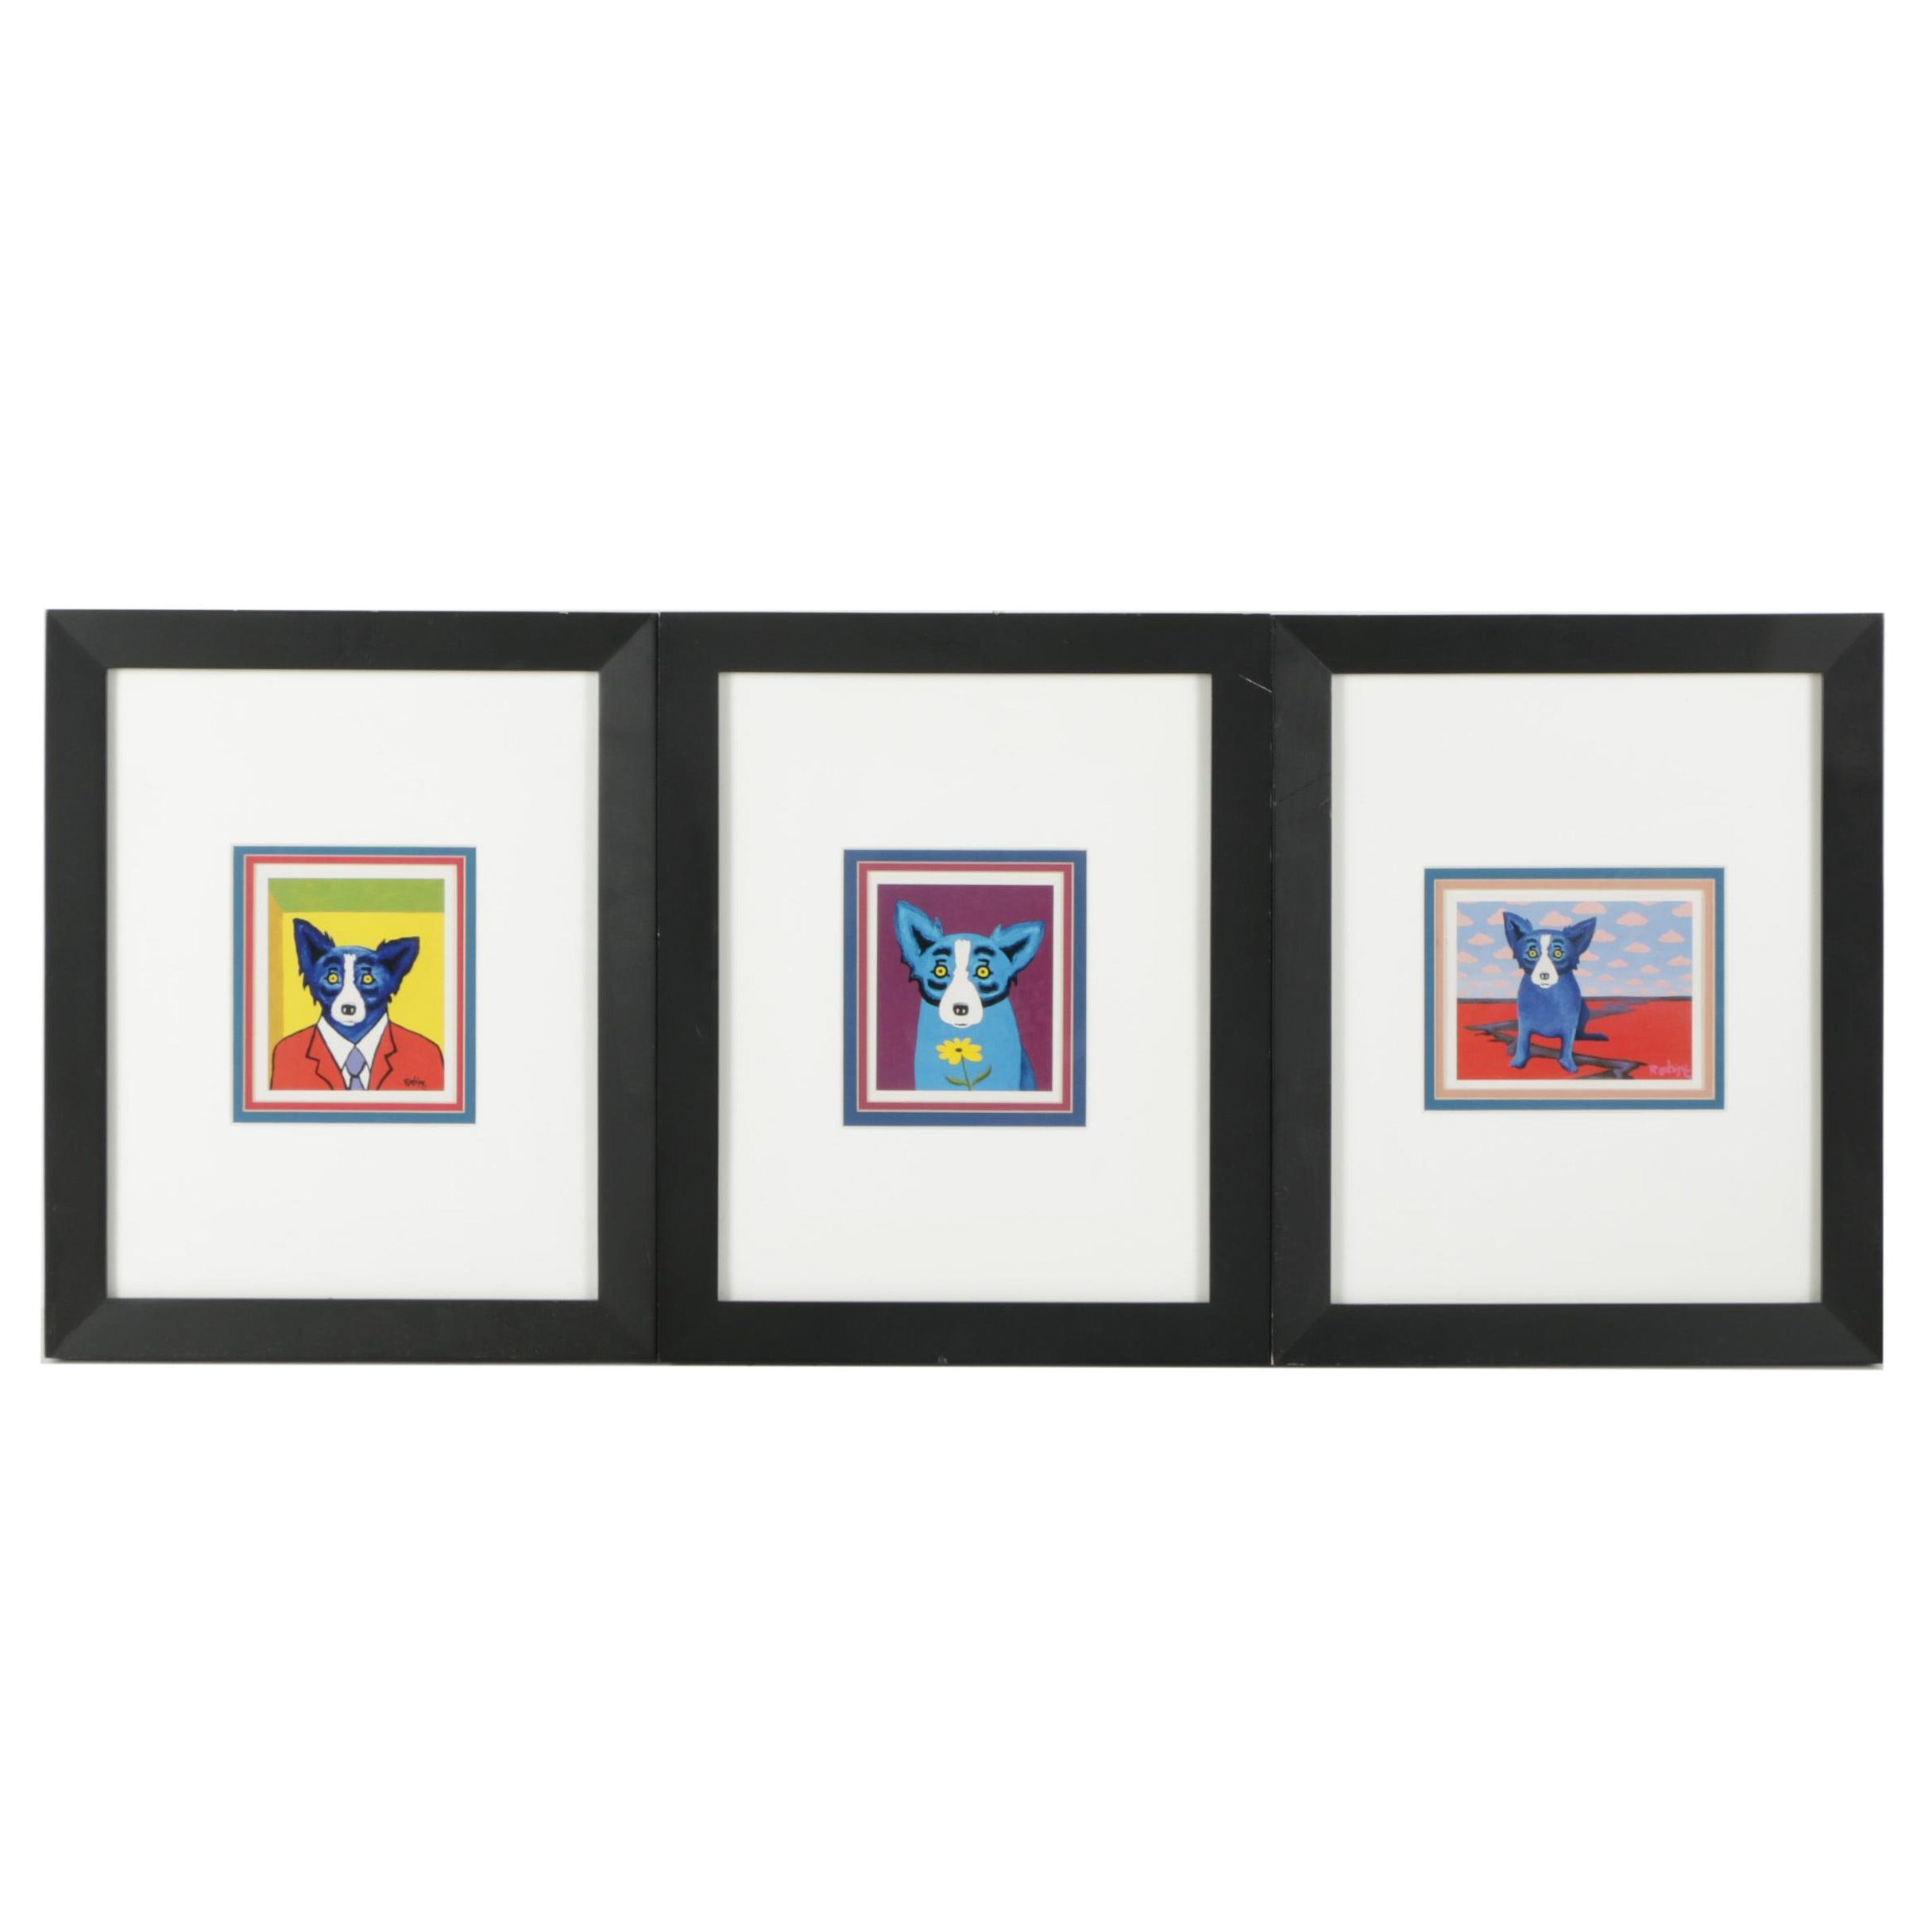 "Offset Lithographs After George Rodrigue's ""Blue Dogs"""